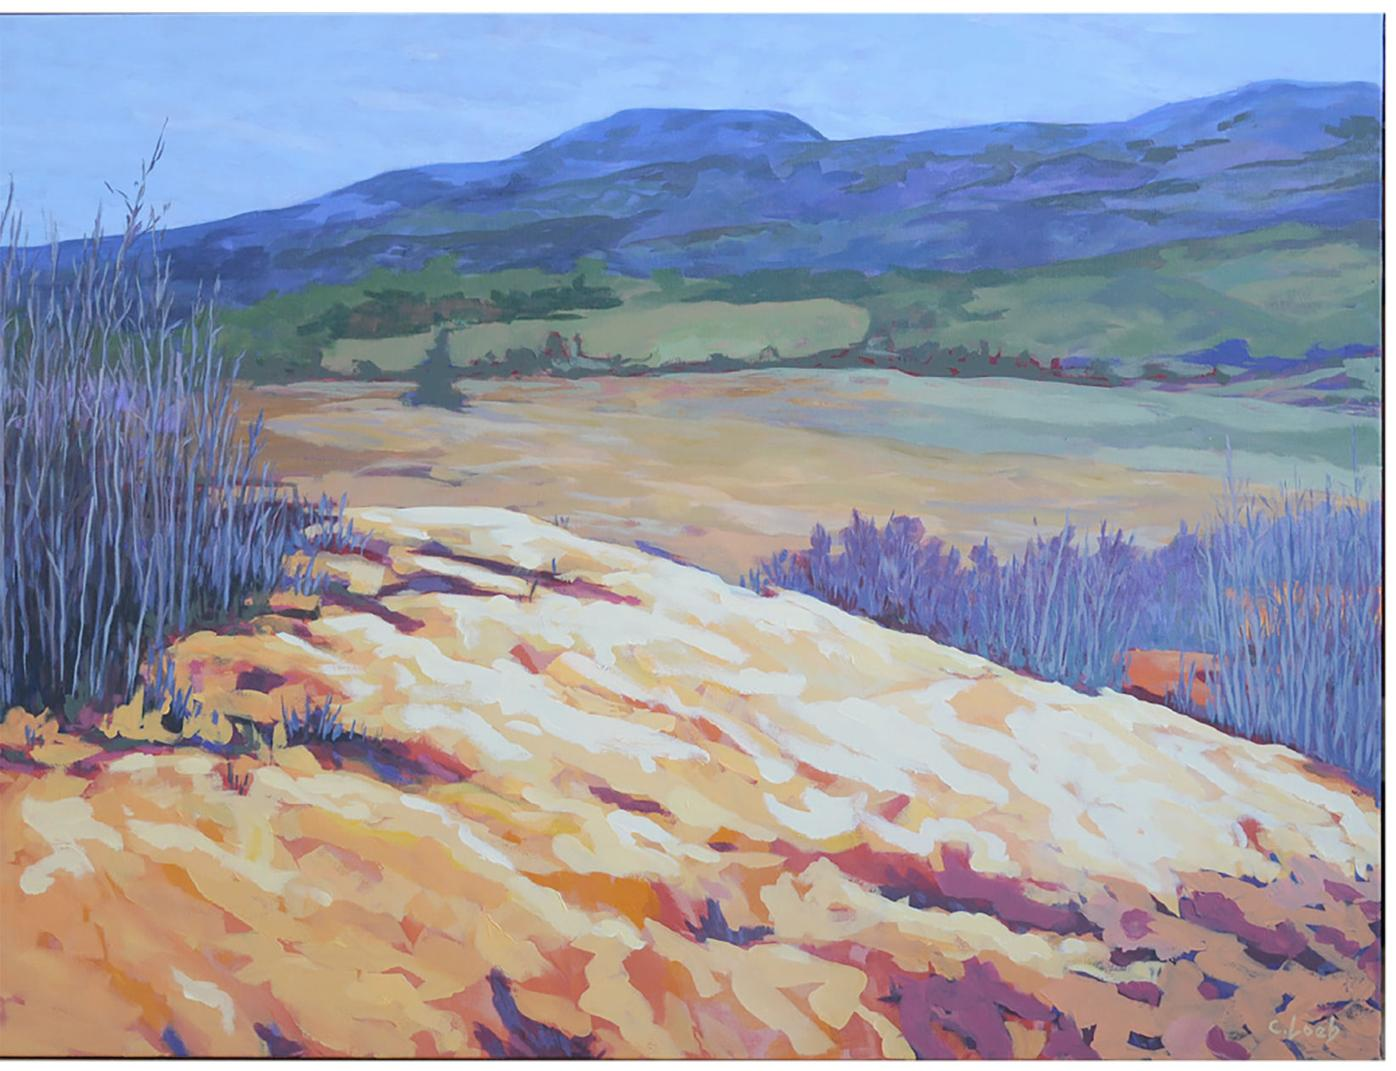 Two artists painting Canada from coast to coast in celebration of country's 150th birthday